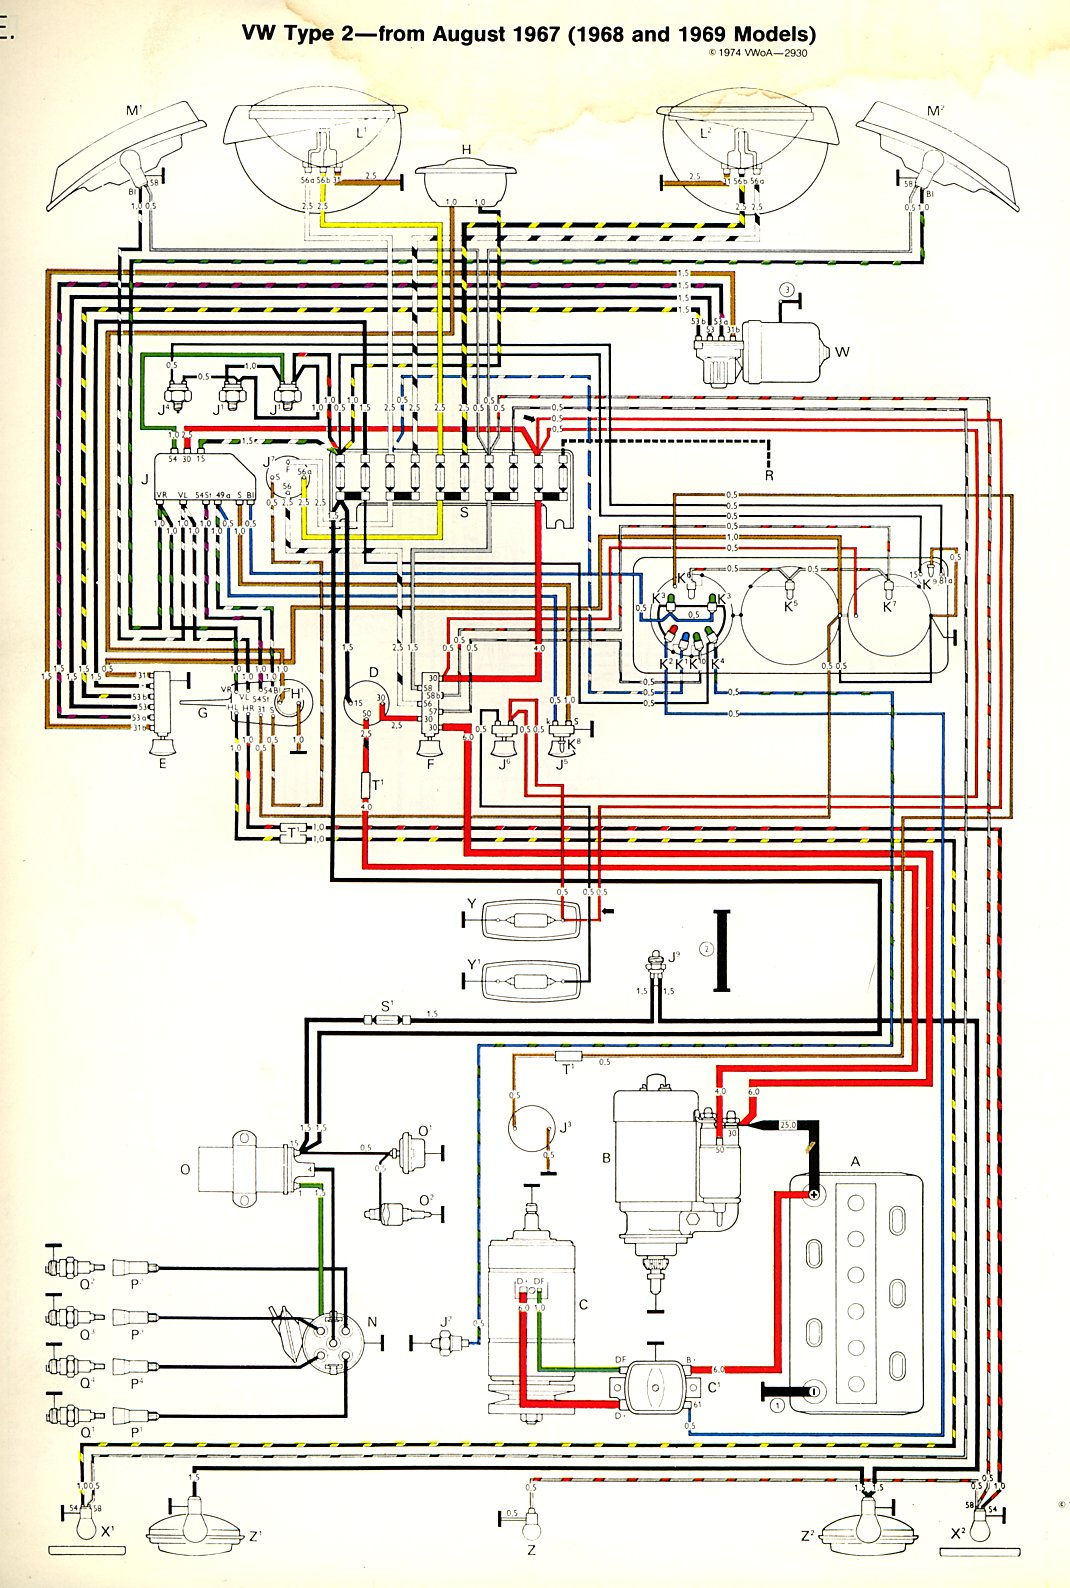 1968 vw bug wiring thesamba.com :: type 2 wiring diagrams 1968 vw bug generator wiring #6